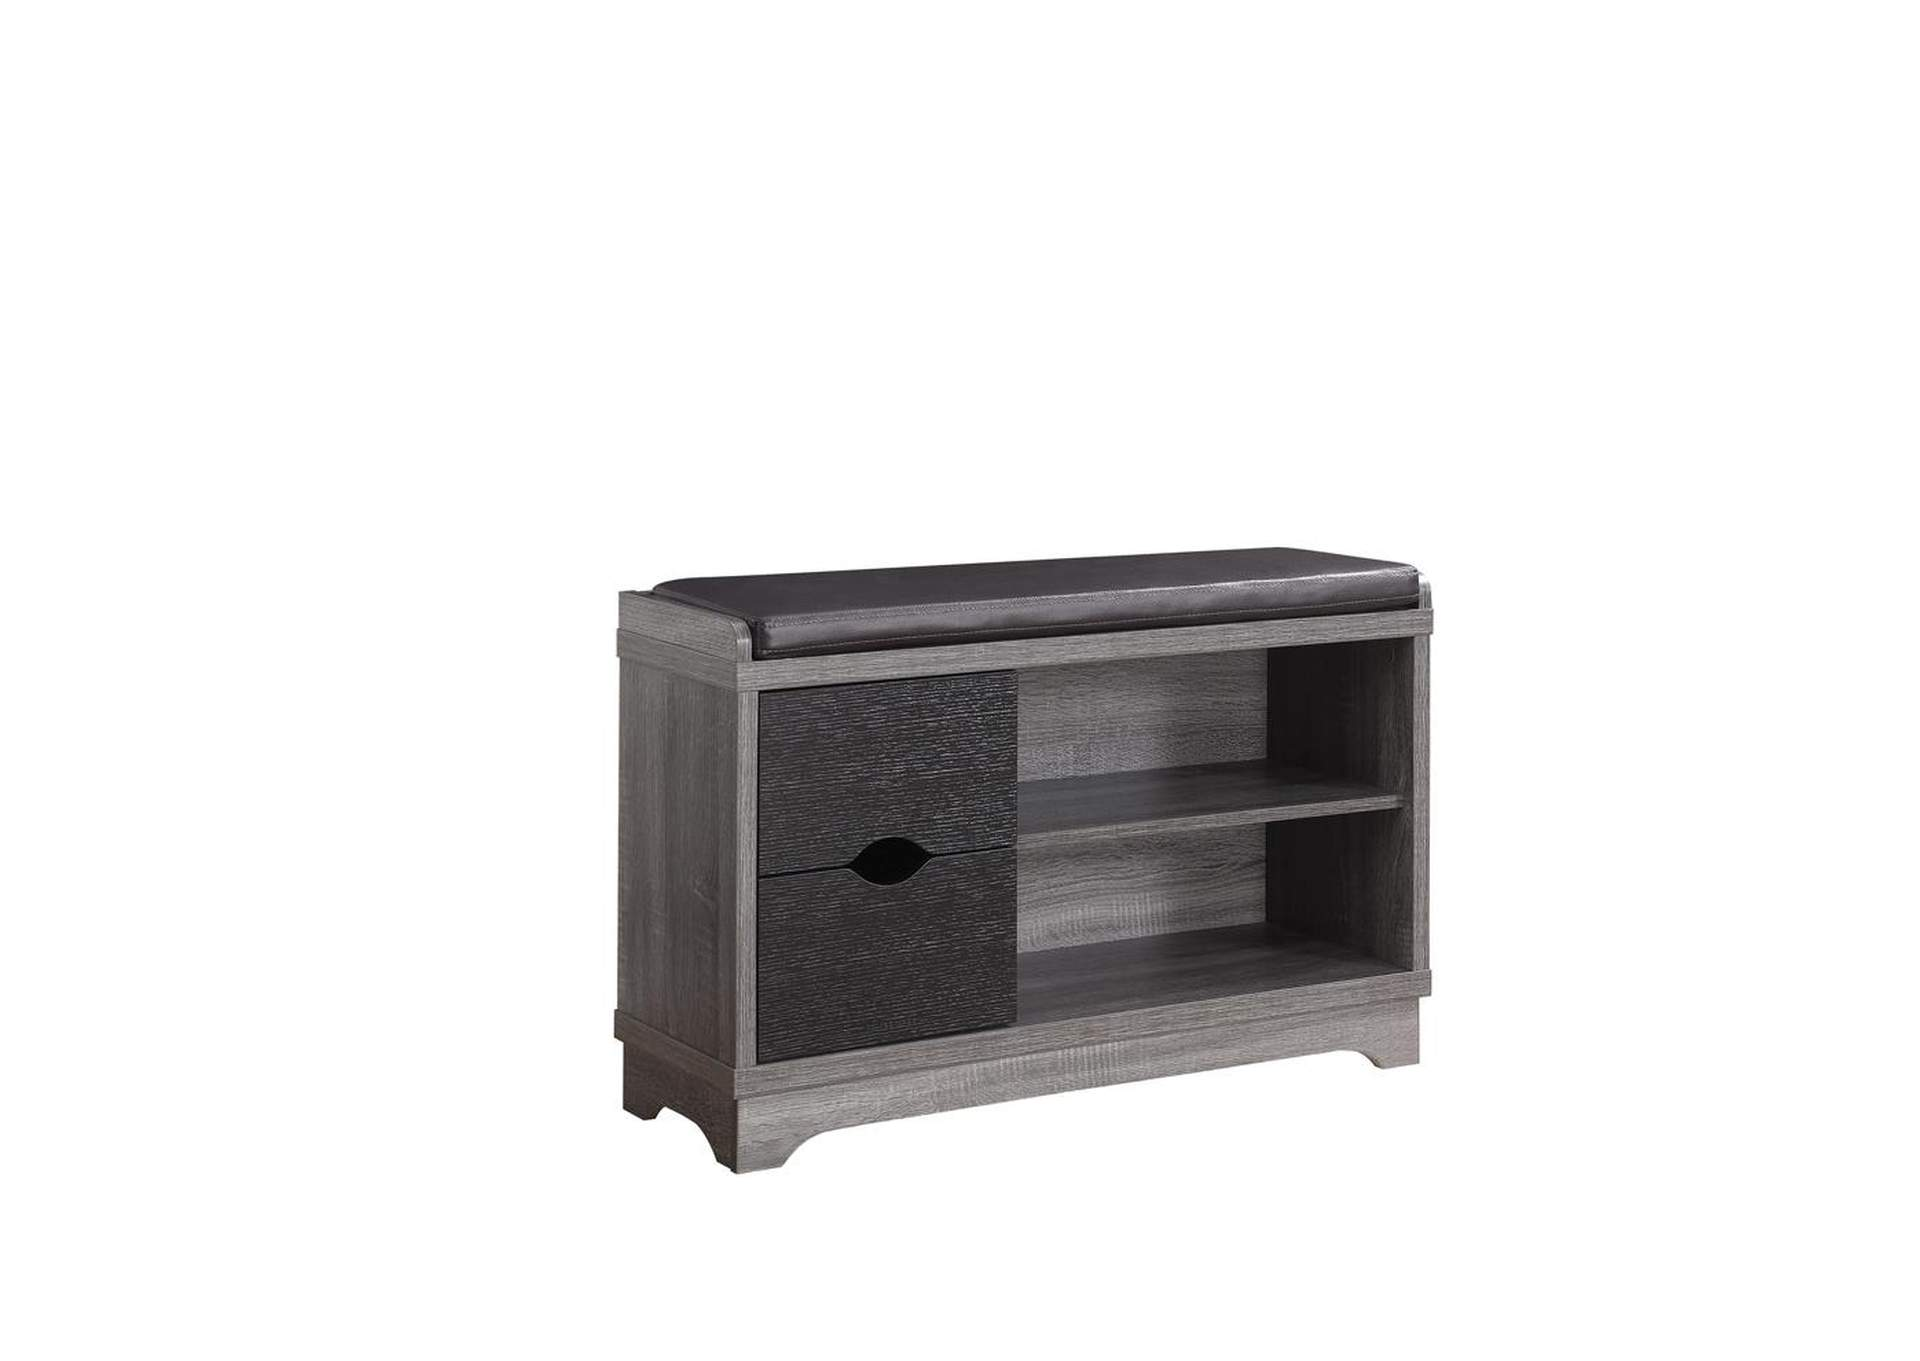 Distressed Grey/Black Rustic Distressed Grey Shoe Cabinet,Coaster Furniture